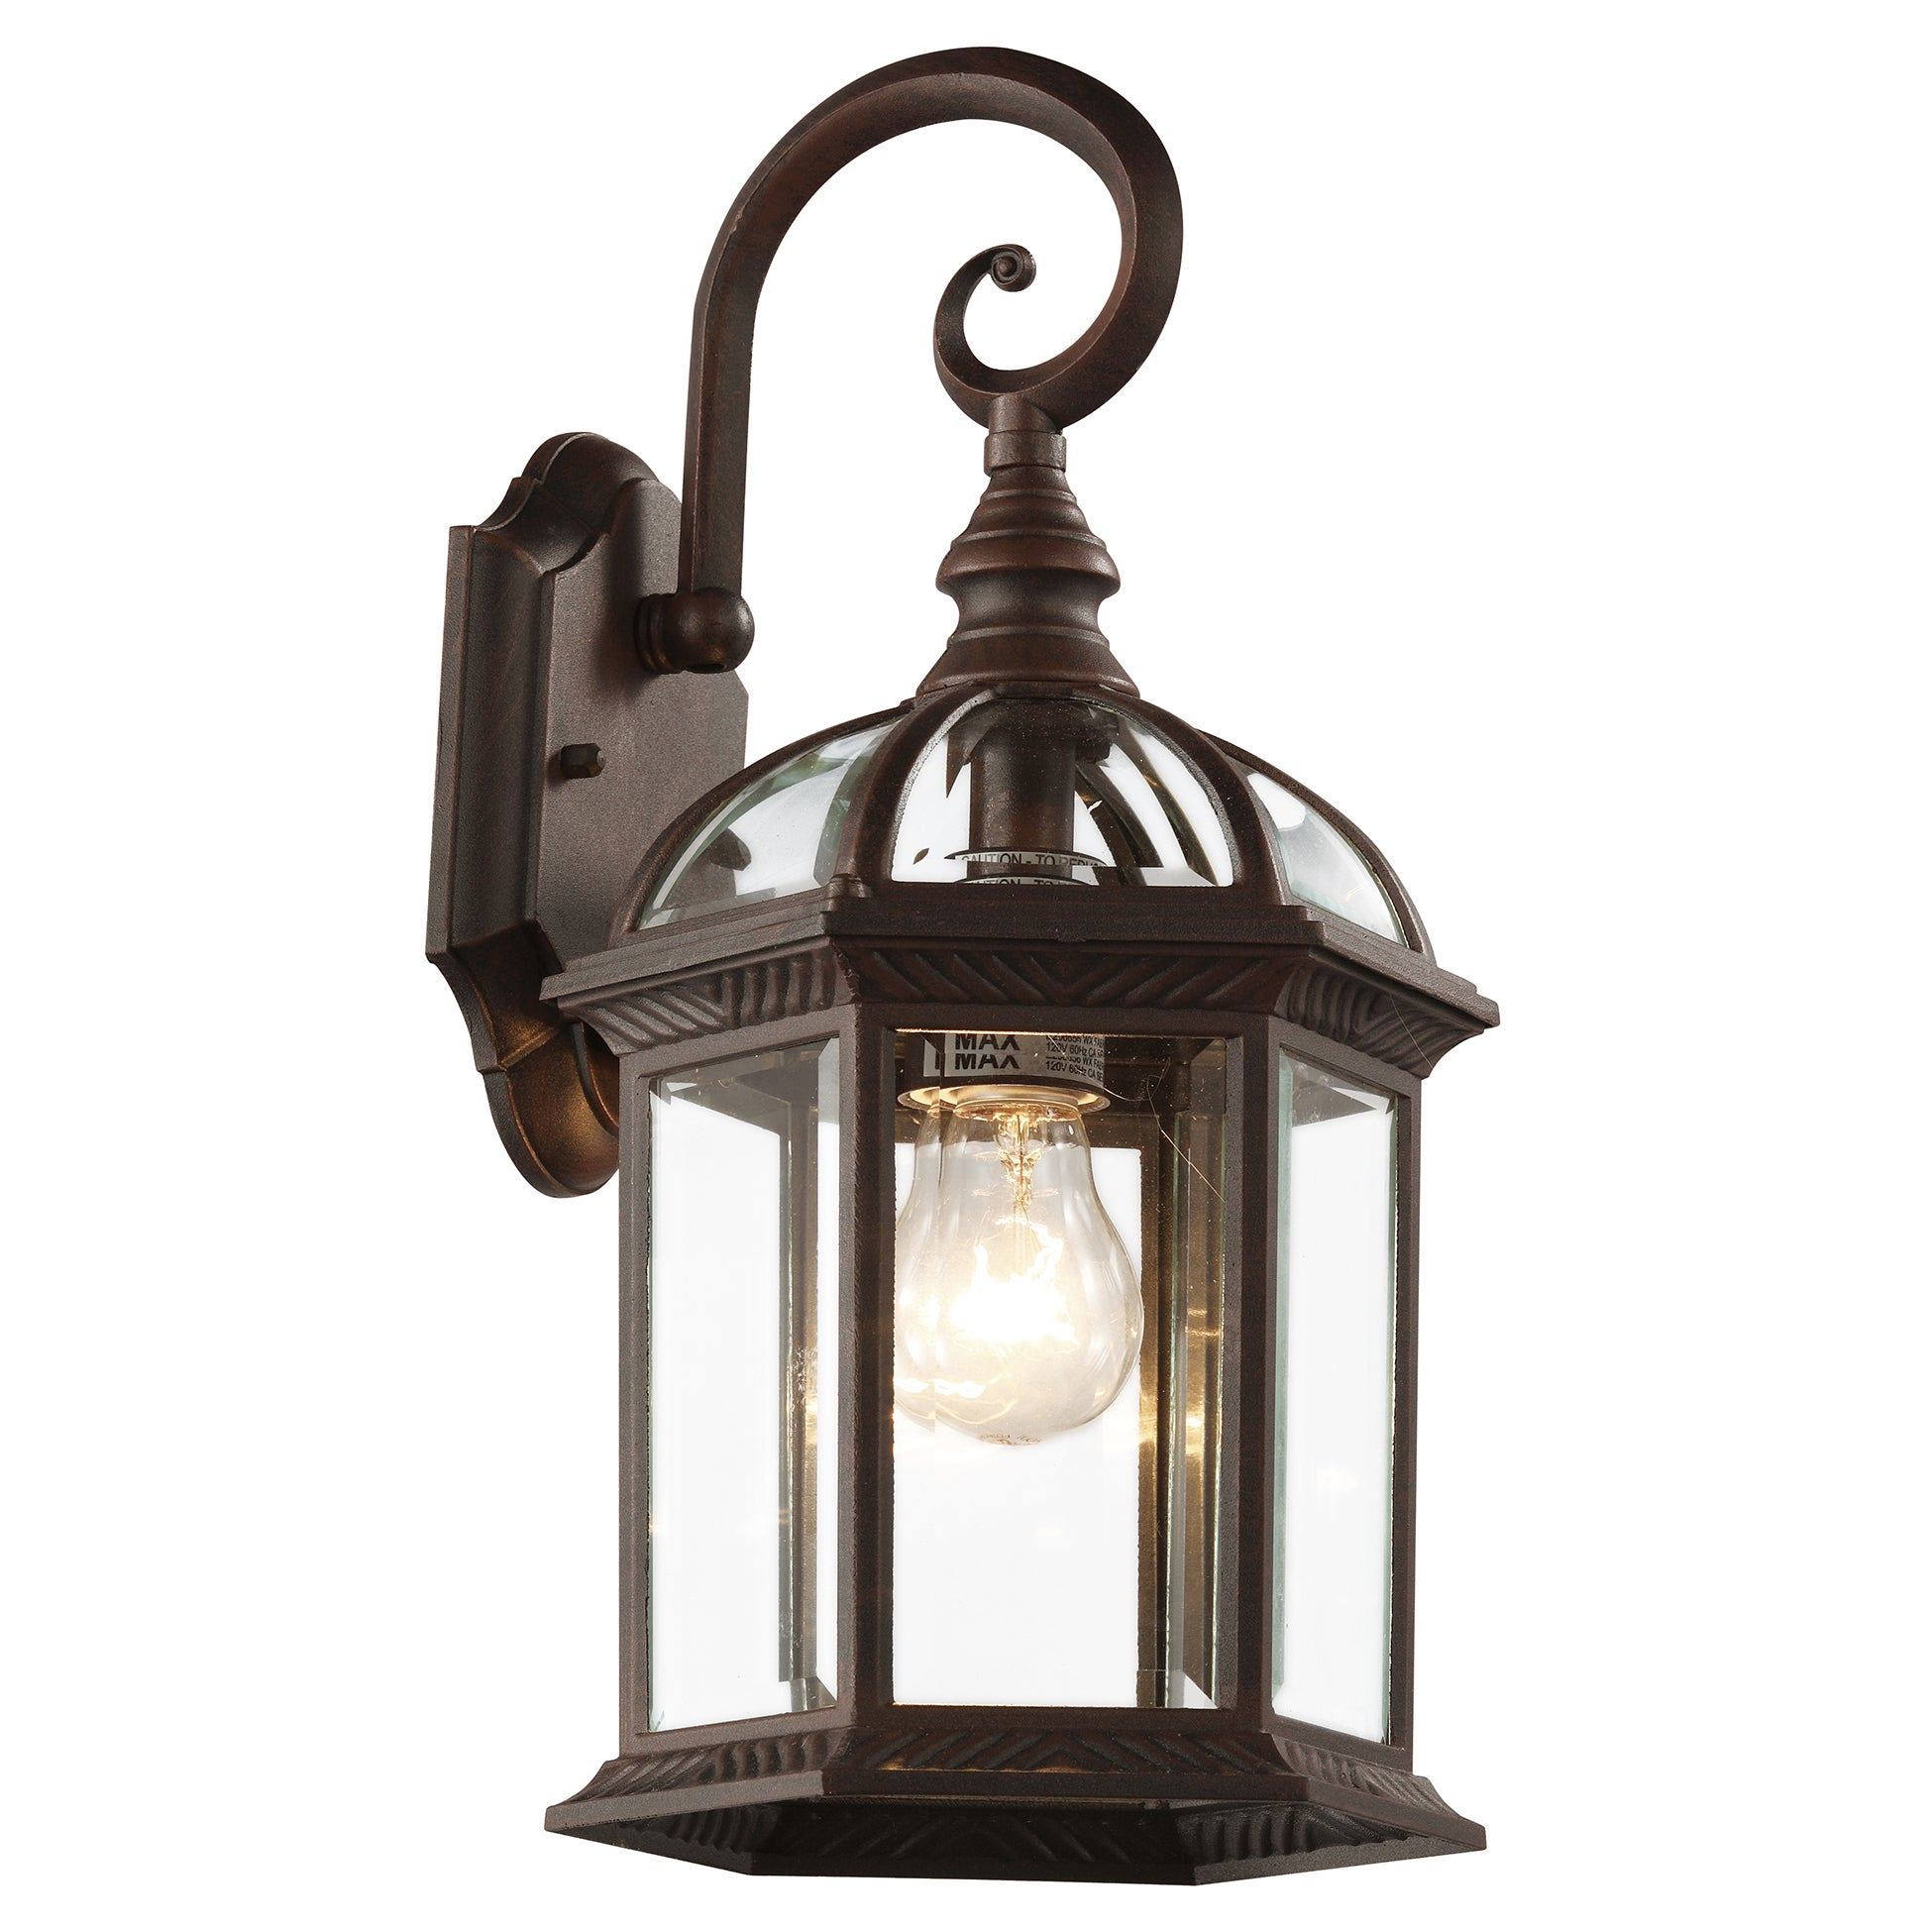 Shop bel air lighting cb 4181 rt 16 inch rustic outdoor lantern fixtures free shipping on orders over 45 overstock 11807072